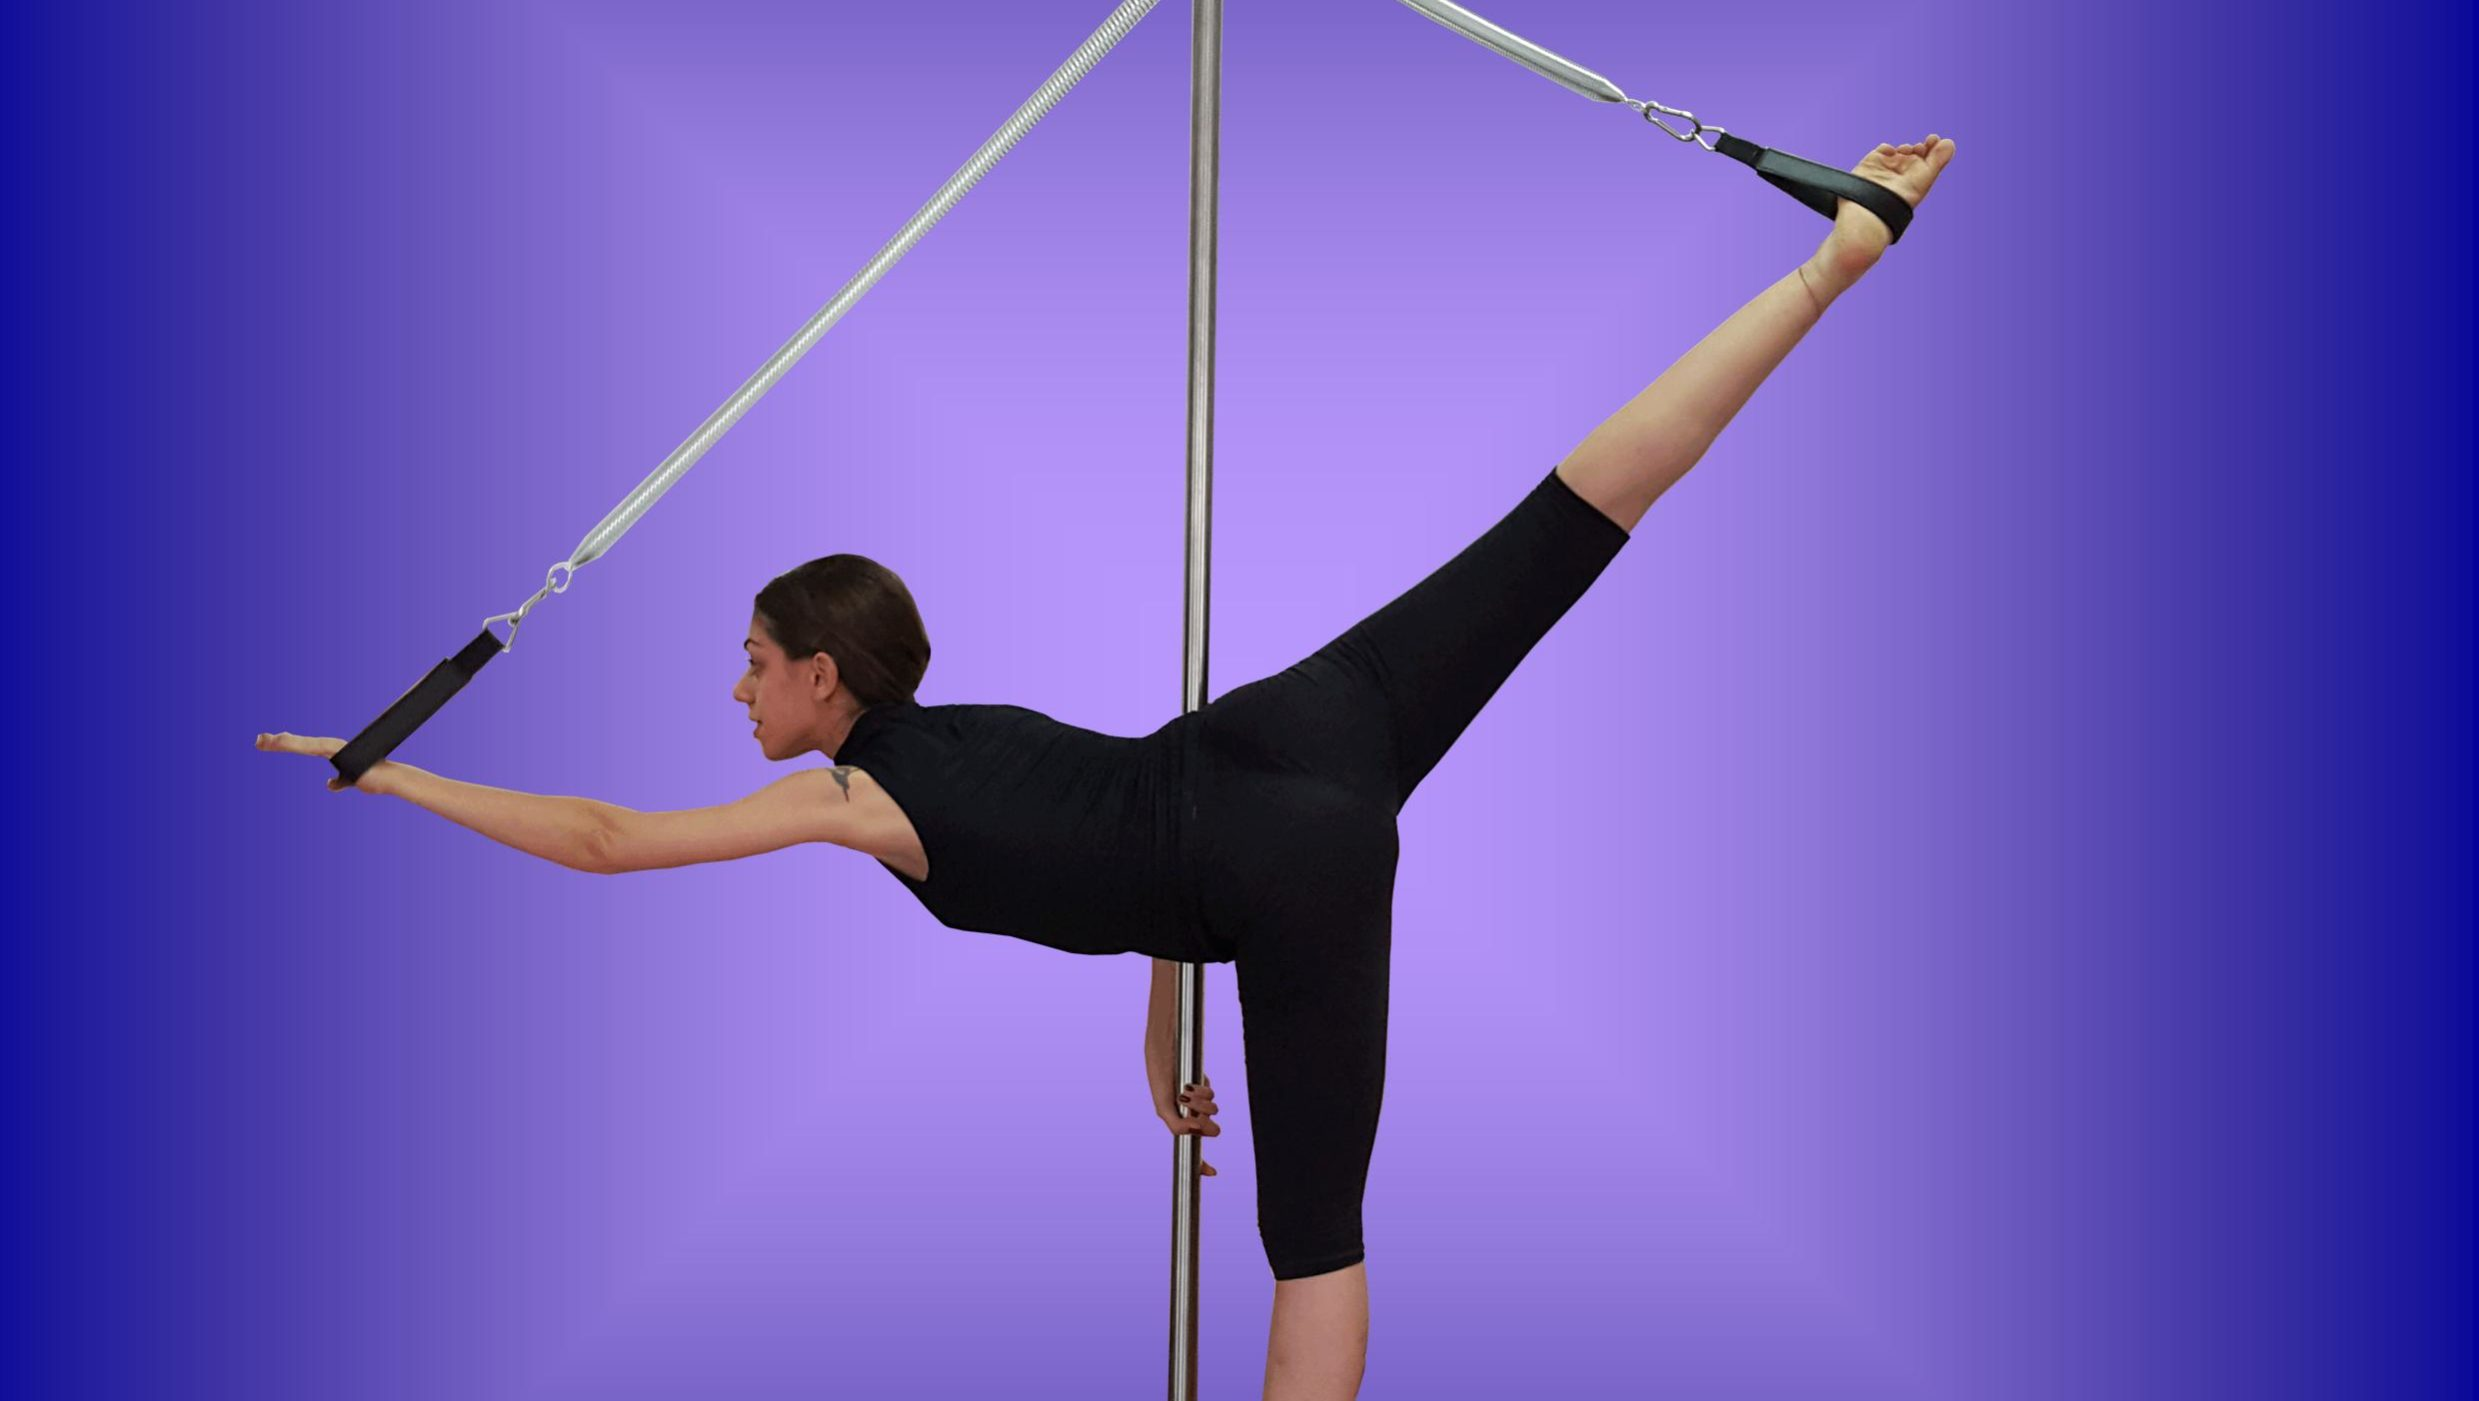 Pilates Pedi Pole